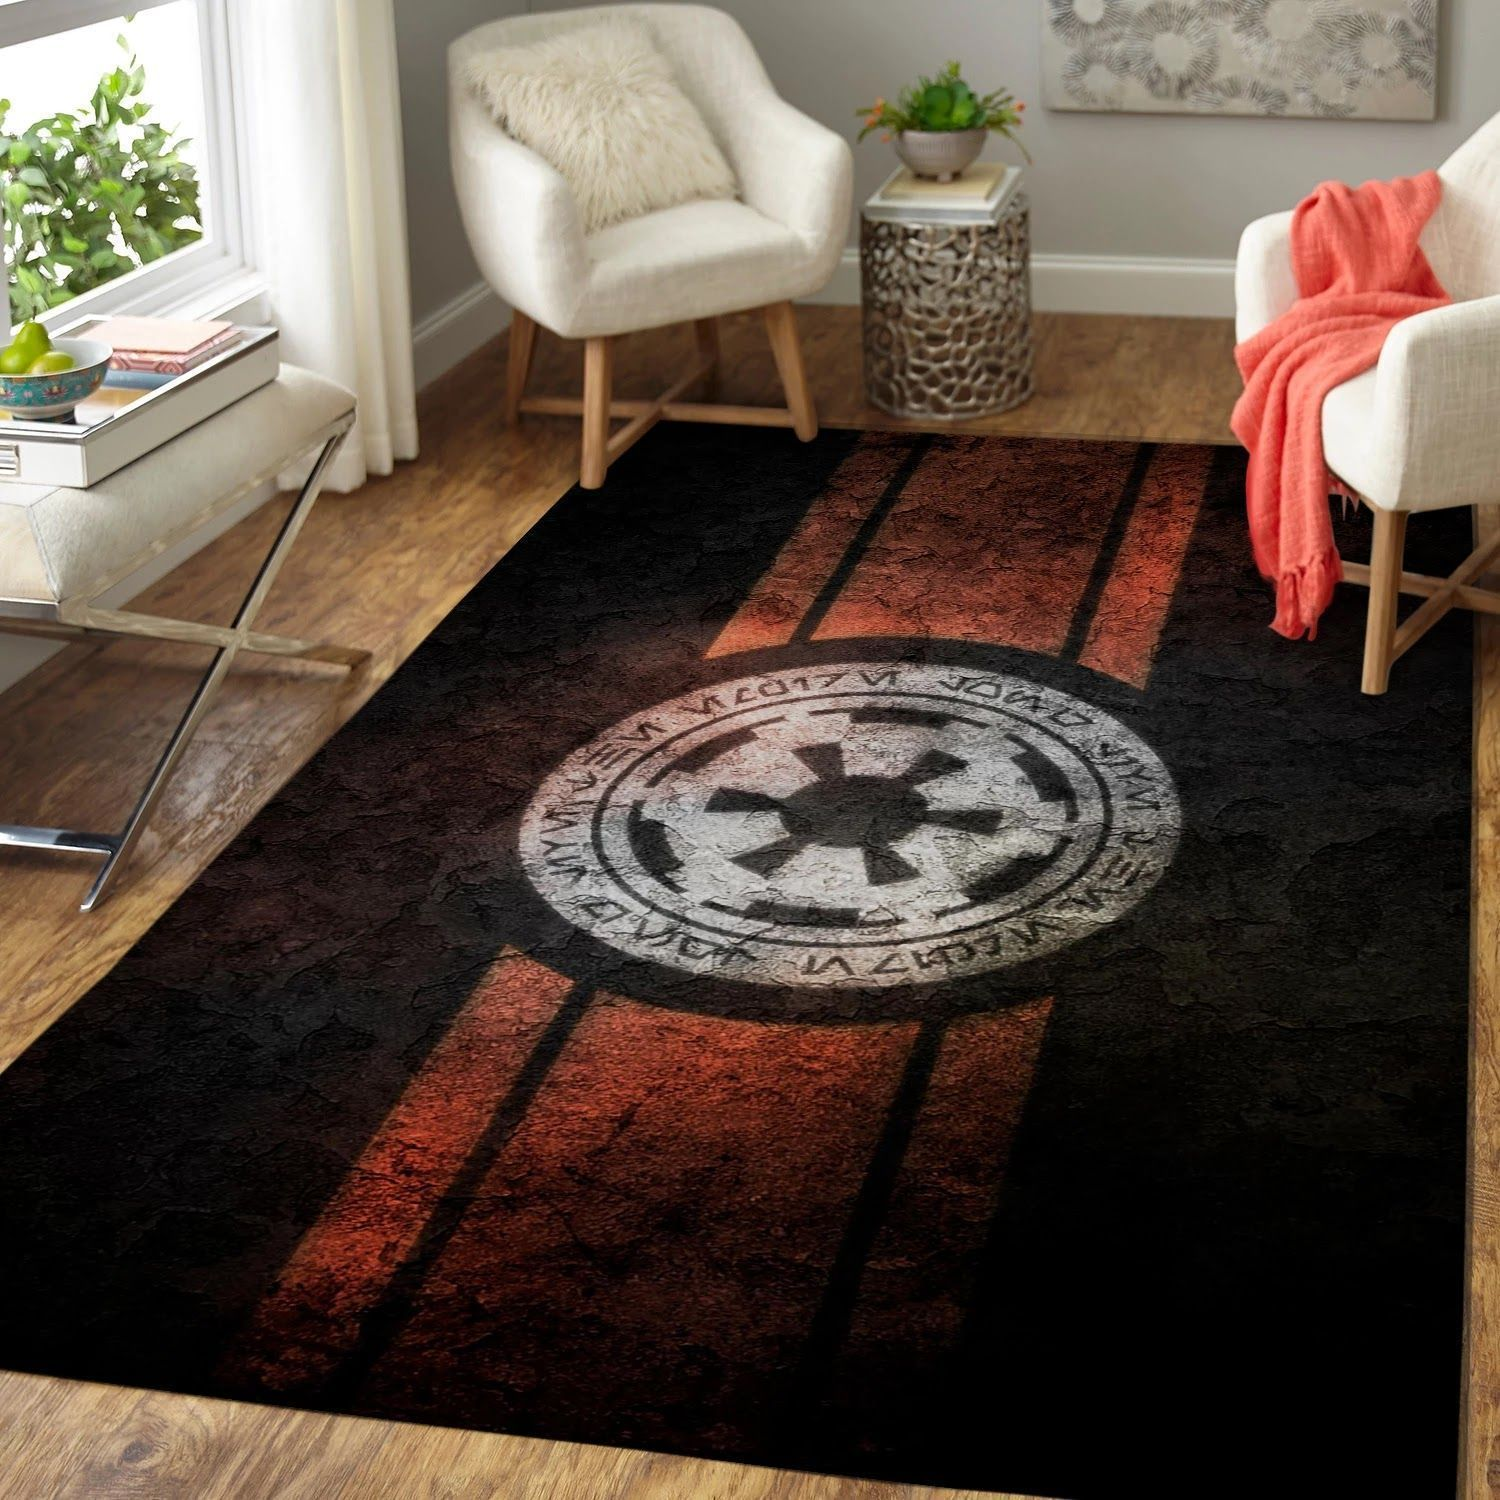 Amazon Star War Living Room Area No6624 Rug